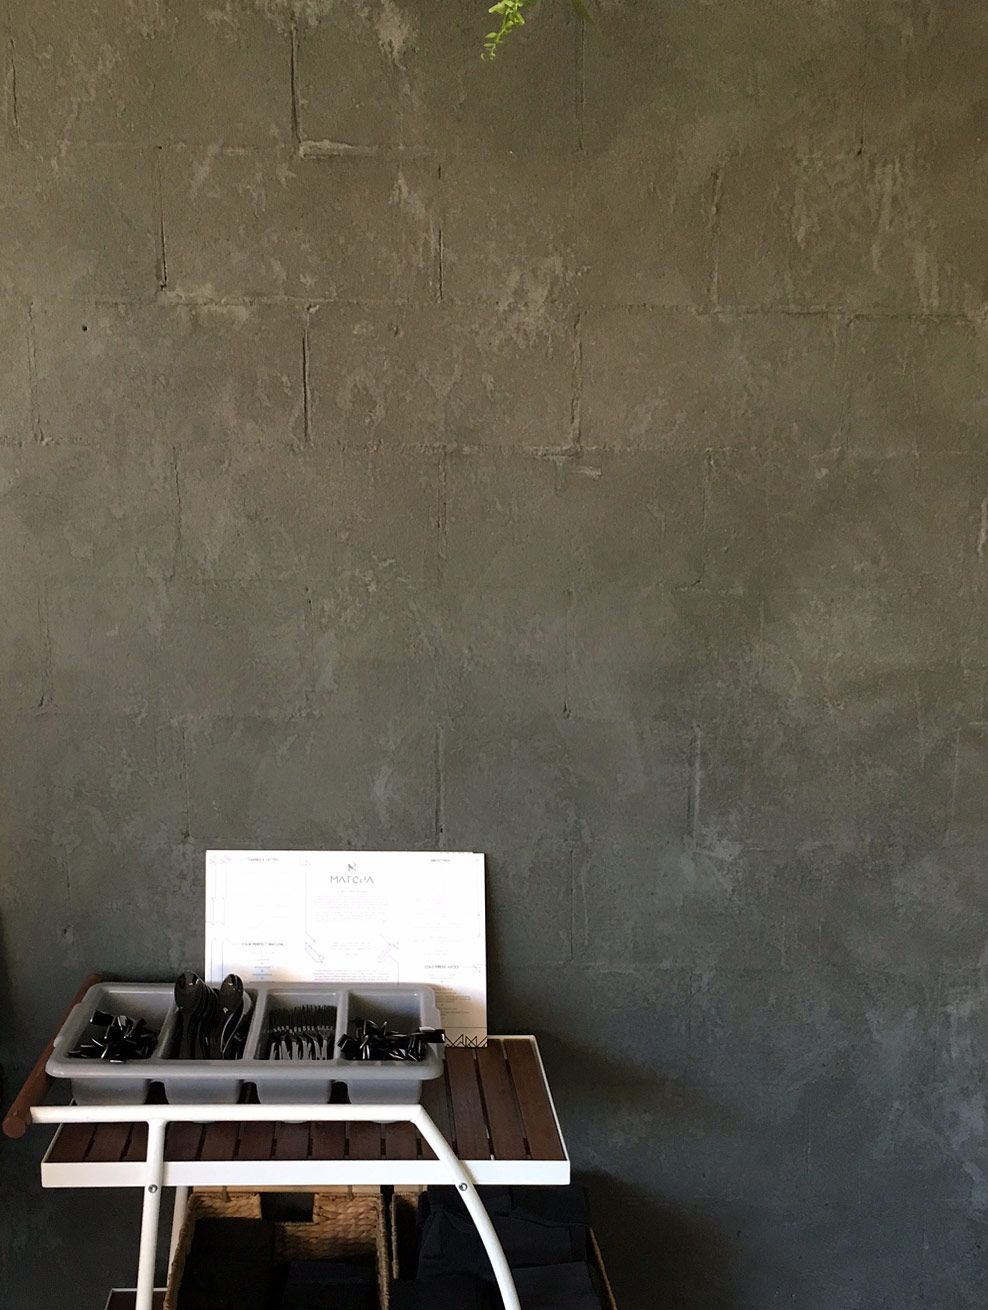 Wall Finishes Ideas Pin By Tracie Botsford On Wall Finishes Pinterest Wall Wall